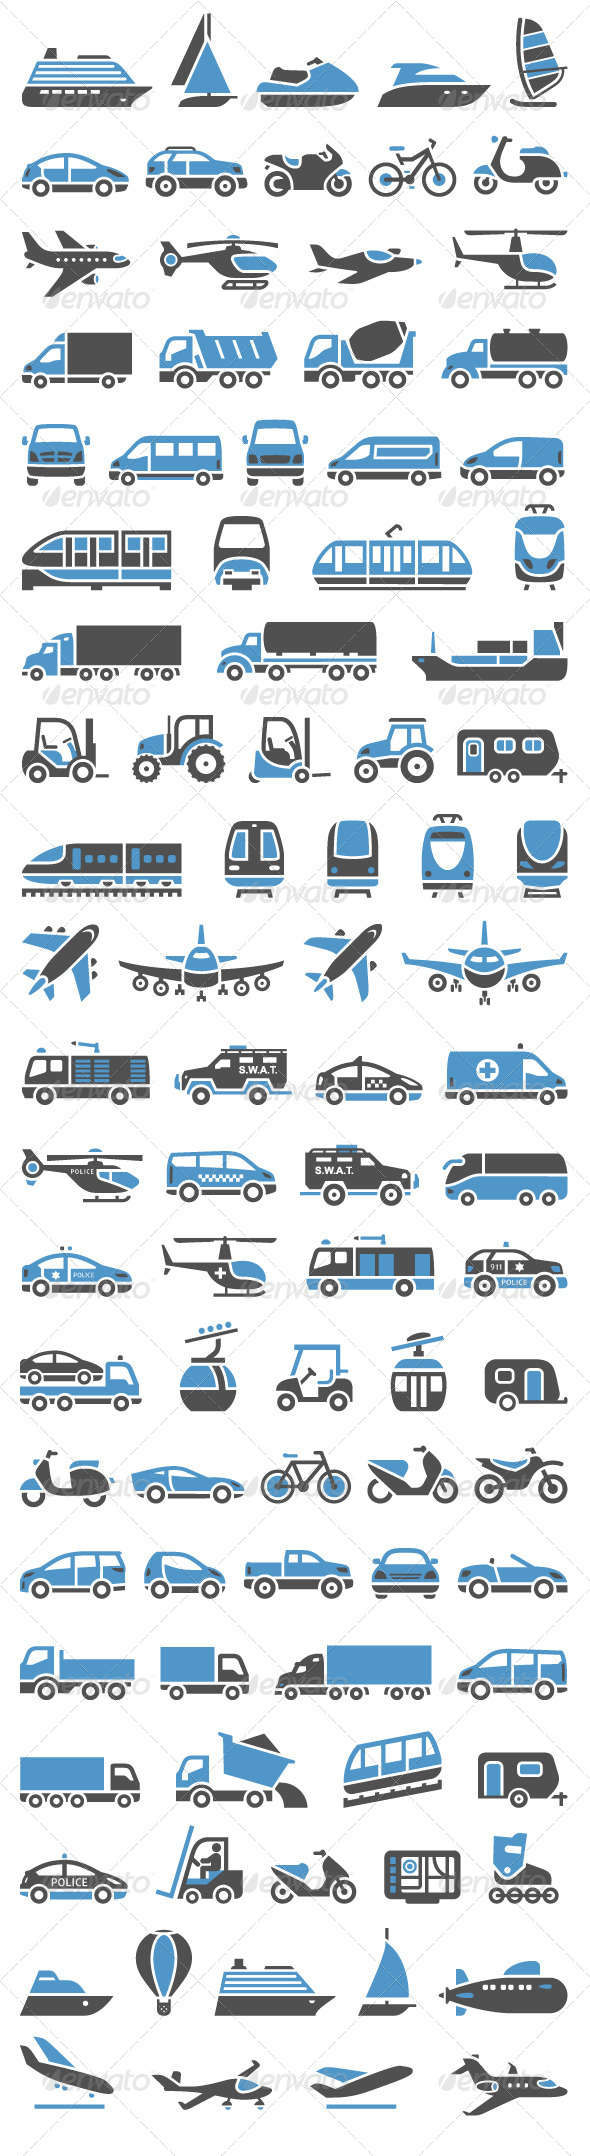 93 Transport icons set blue and gray 590